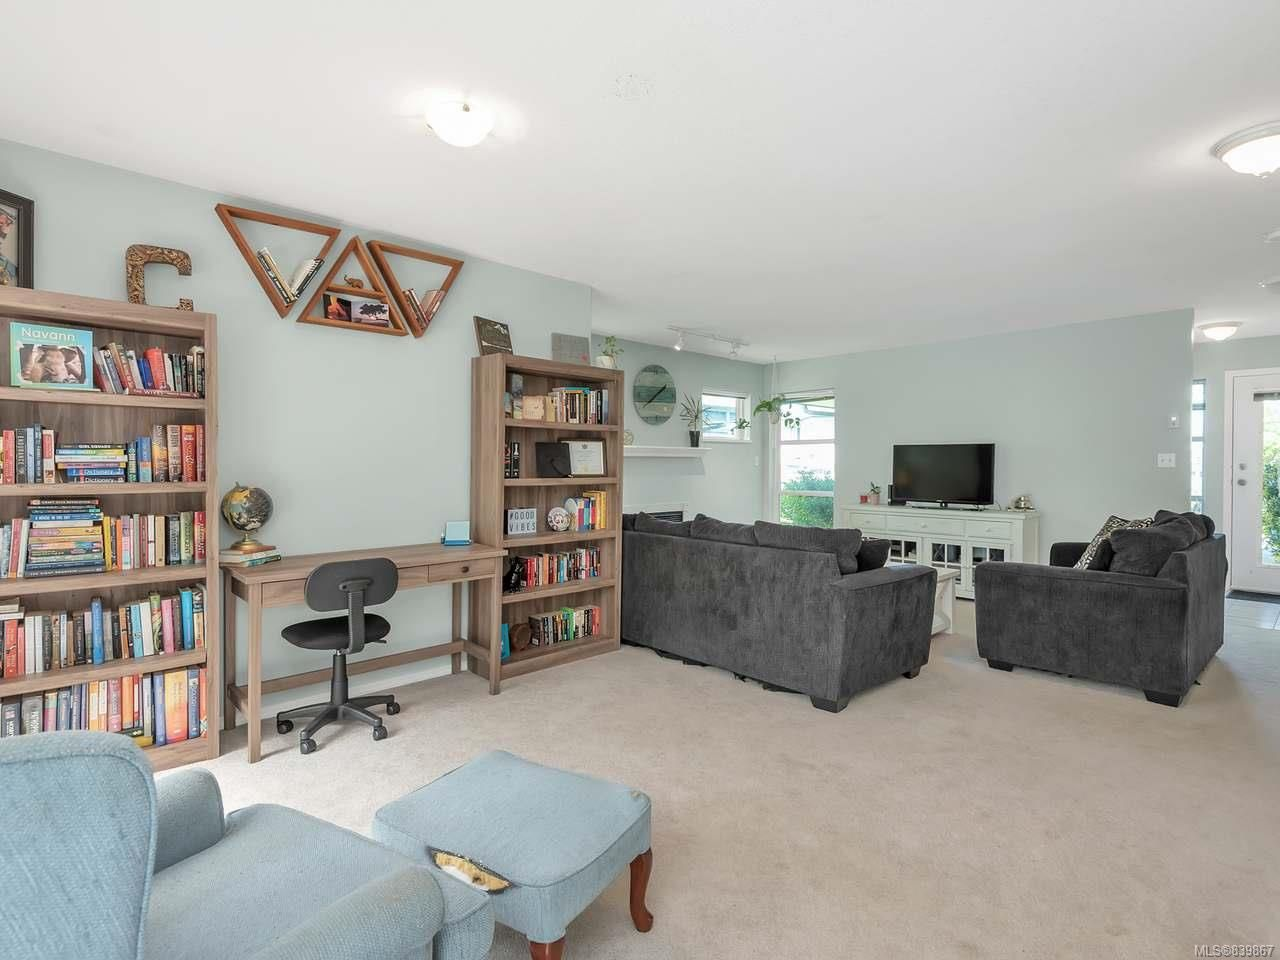 Photo 19: Photos: 21 2750 Denman St in CAMPBELL RIVER: CR Willow Point Row/Townhouse for sale (Campbell River)  : MLS®# 839867